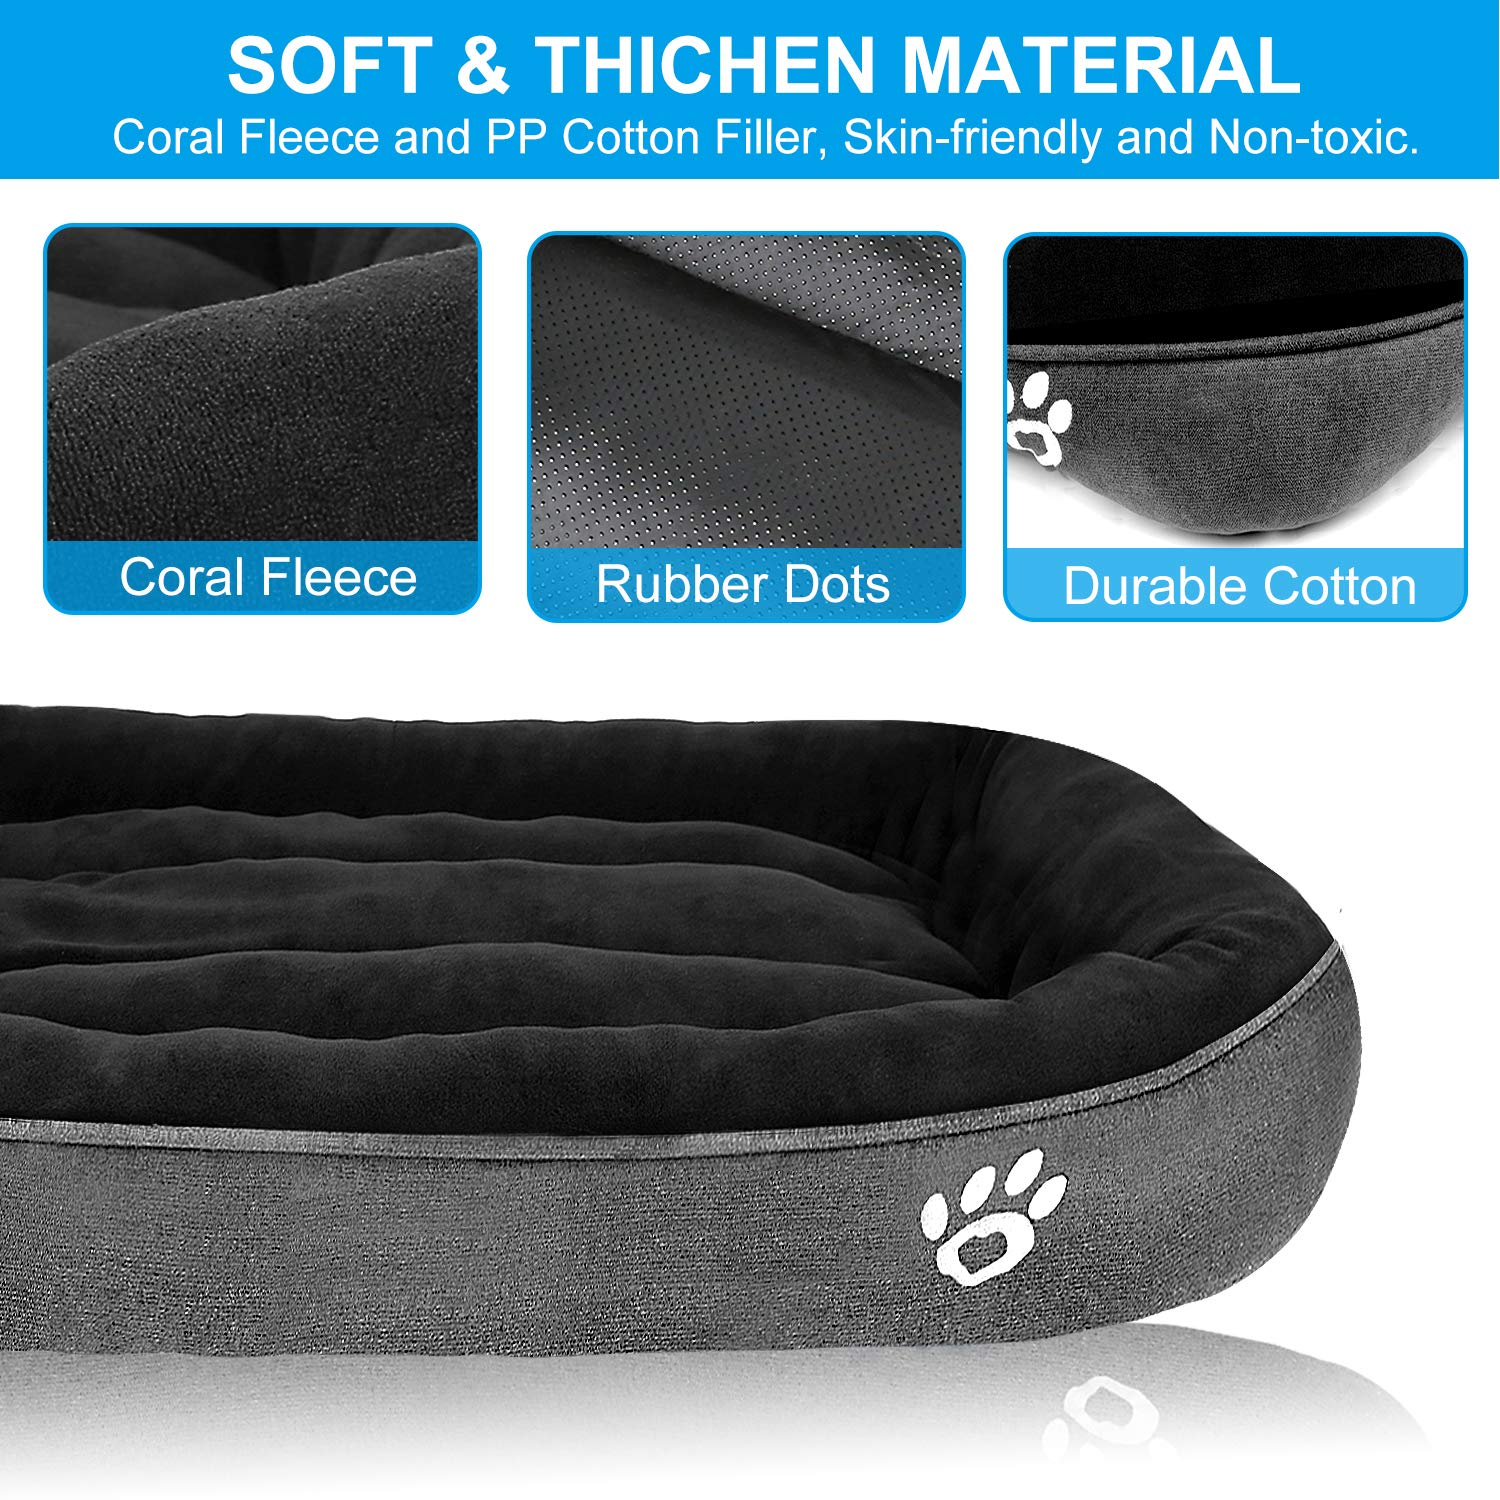 CLOUDZONE Large Dog Bed 43X32 Machine Washable Soft Coral Fleece with Non-Slip Bottom Oval Thicken Pet Bed for Extra Large and Medium Dogs or Multiple